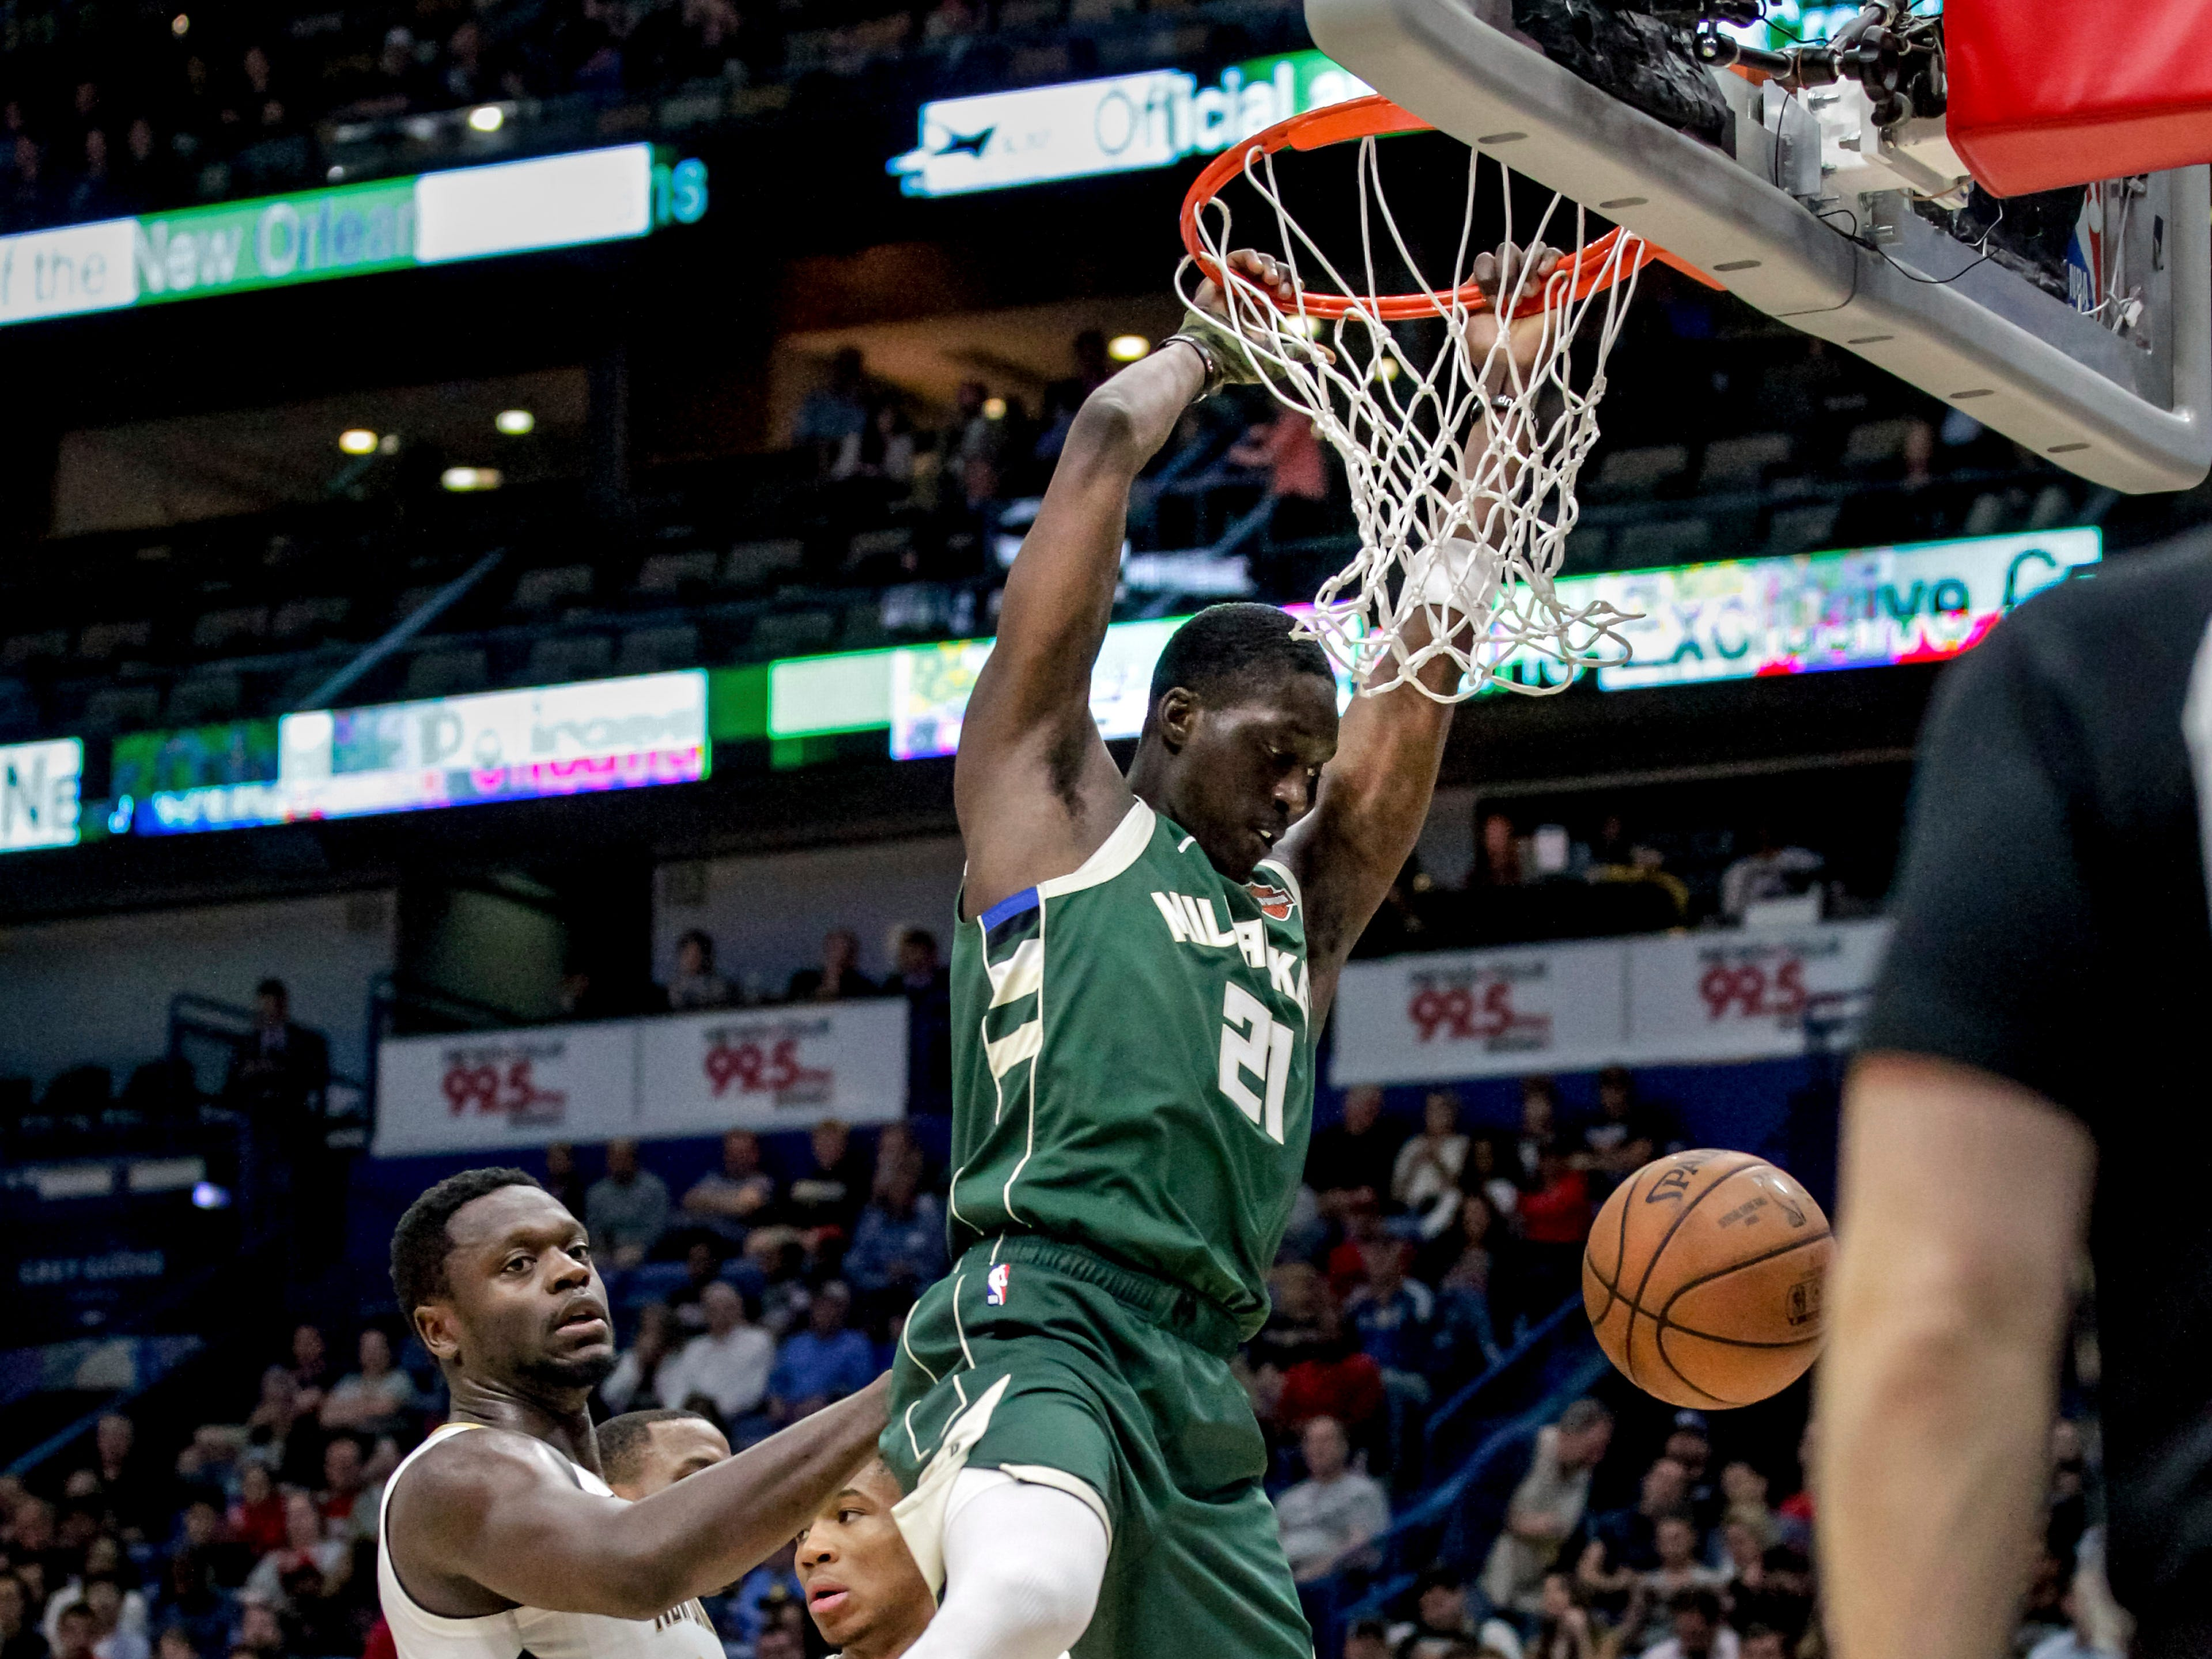 Bucks guard Tony Snell puts down a two-handed dunk against the Pelicans during the second half.